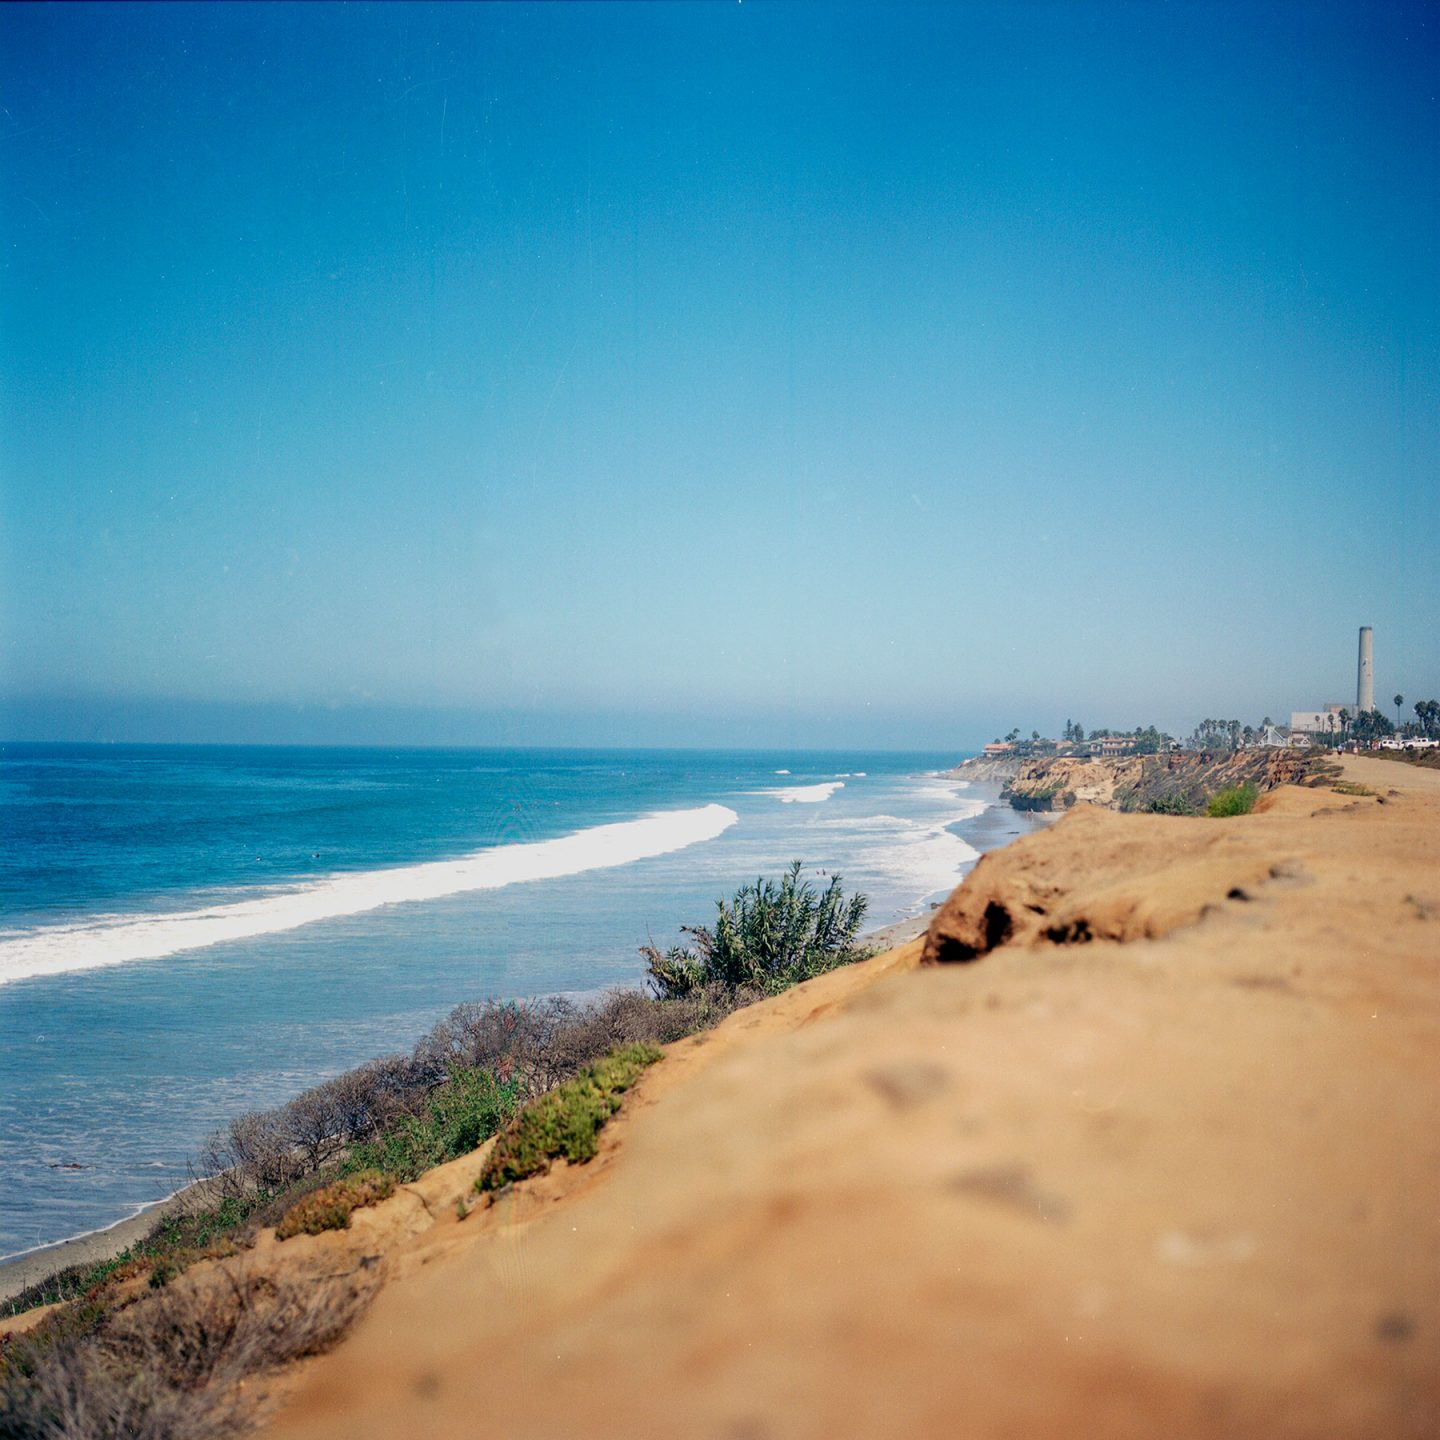 California Sessions – Hasselblad 500cm Kodak film